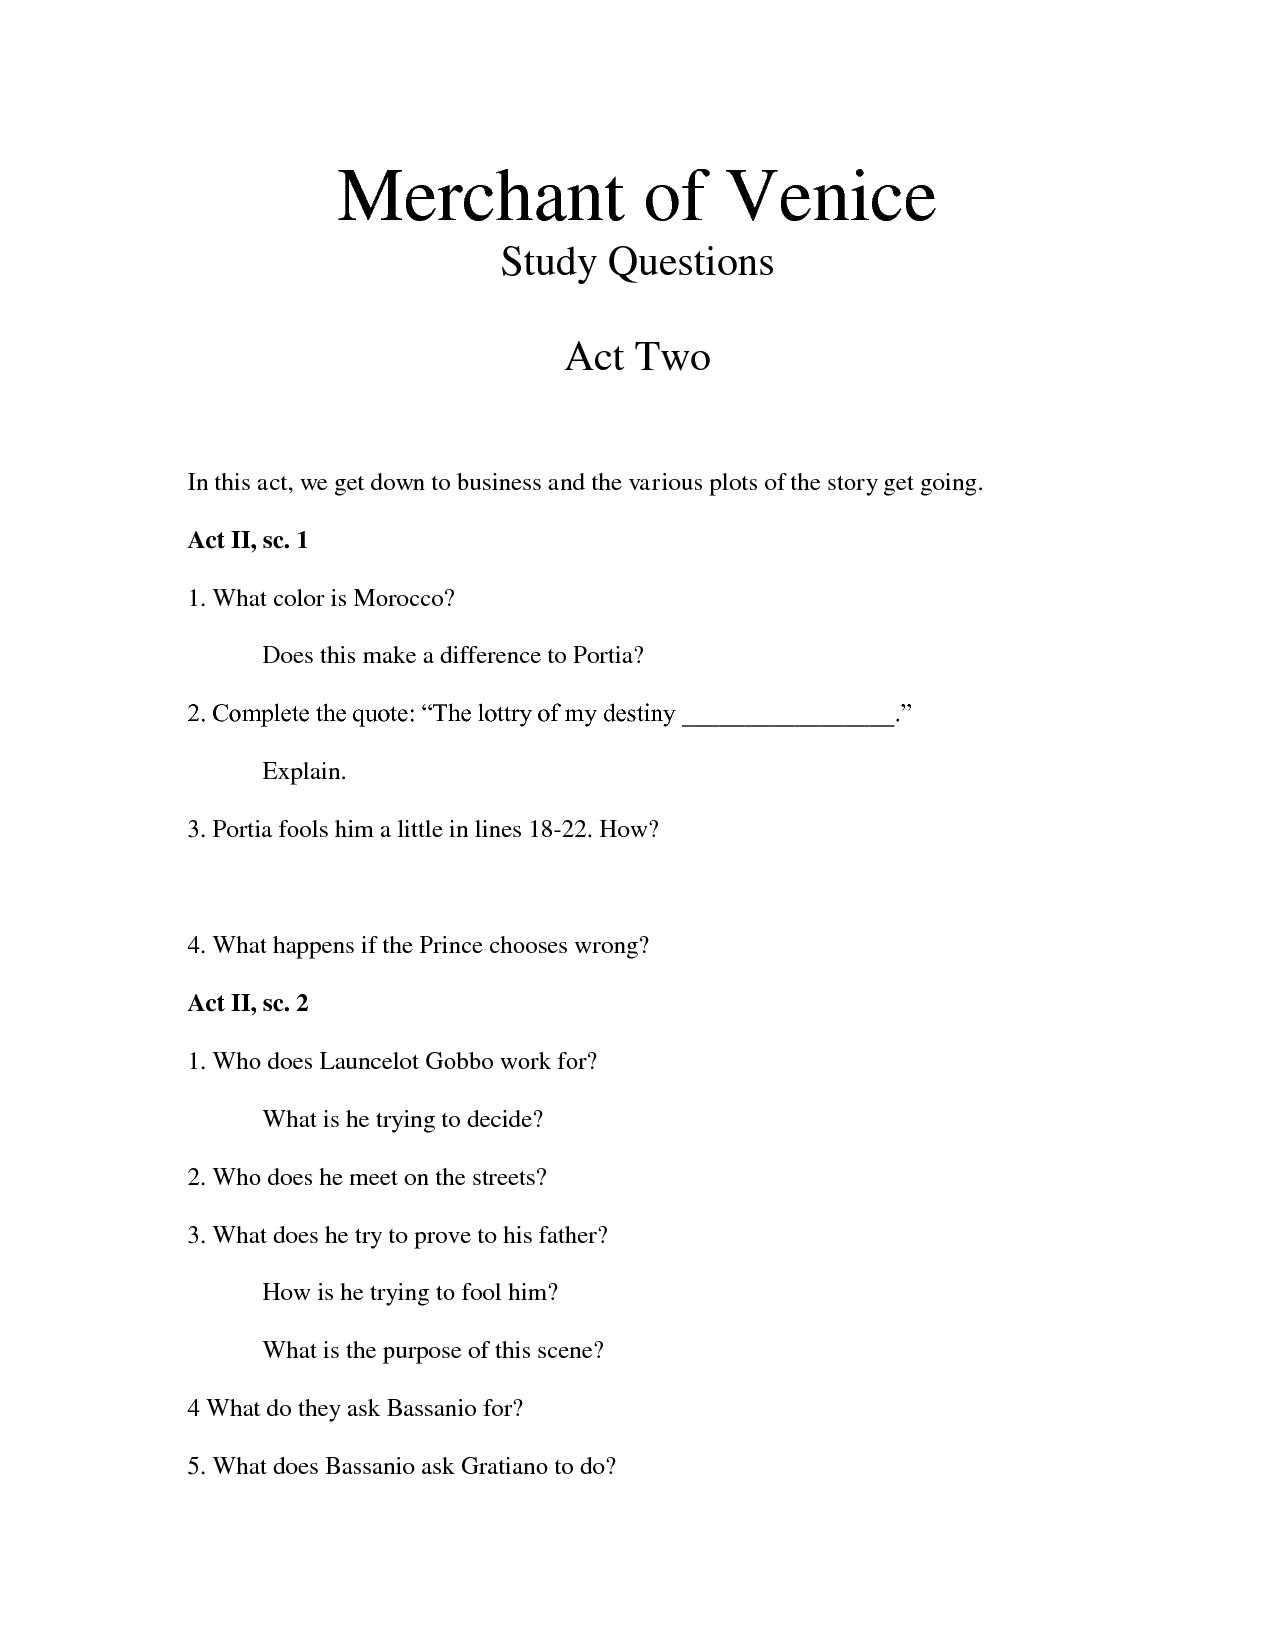 merchant of venice essay titles The merchant of venice essay 'shylock was justified in taking revenge on antonio' do you agree in 'the merchant of venice' by william shakespeare, shylock the jew is portrayed as the antagonist of the story.